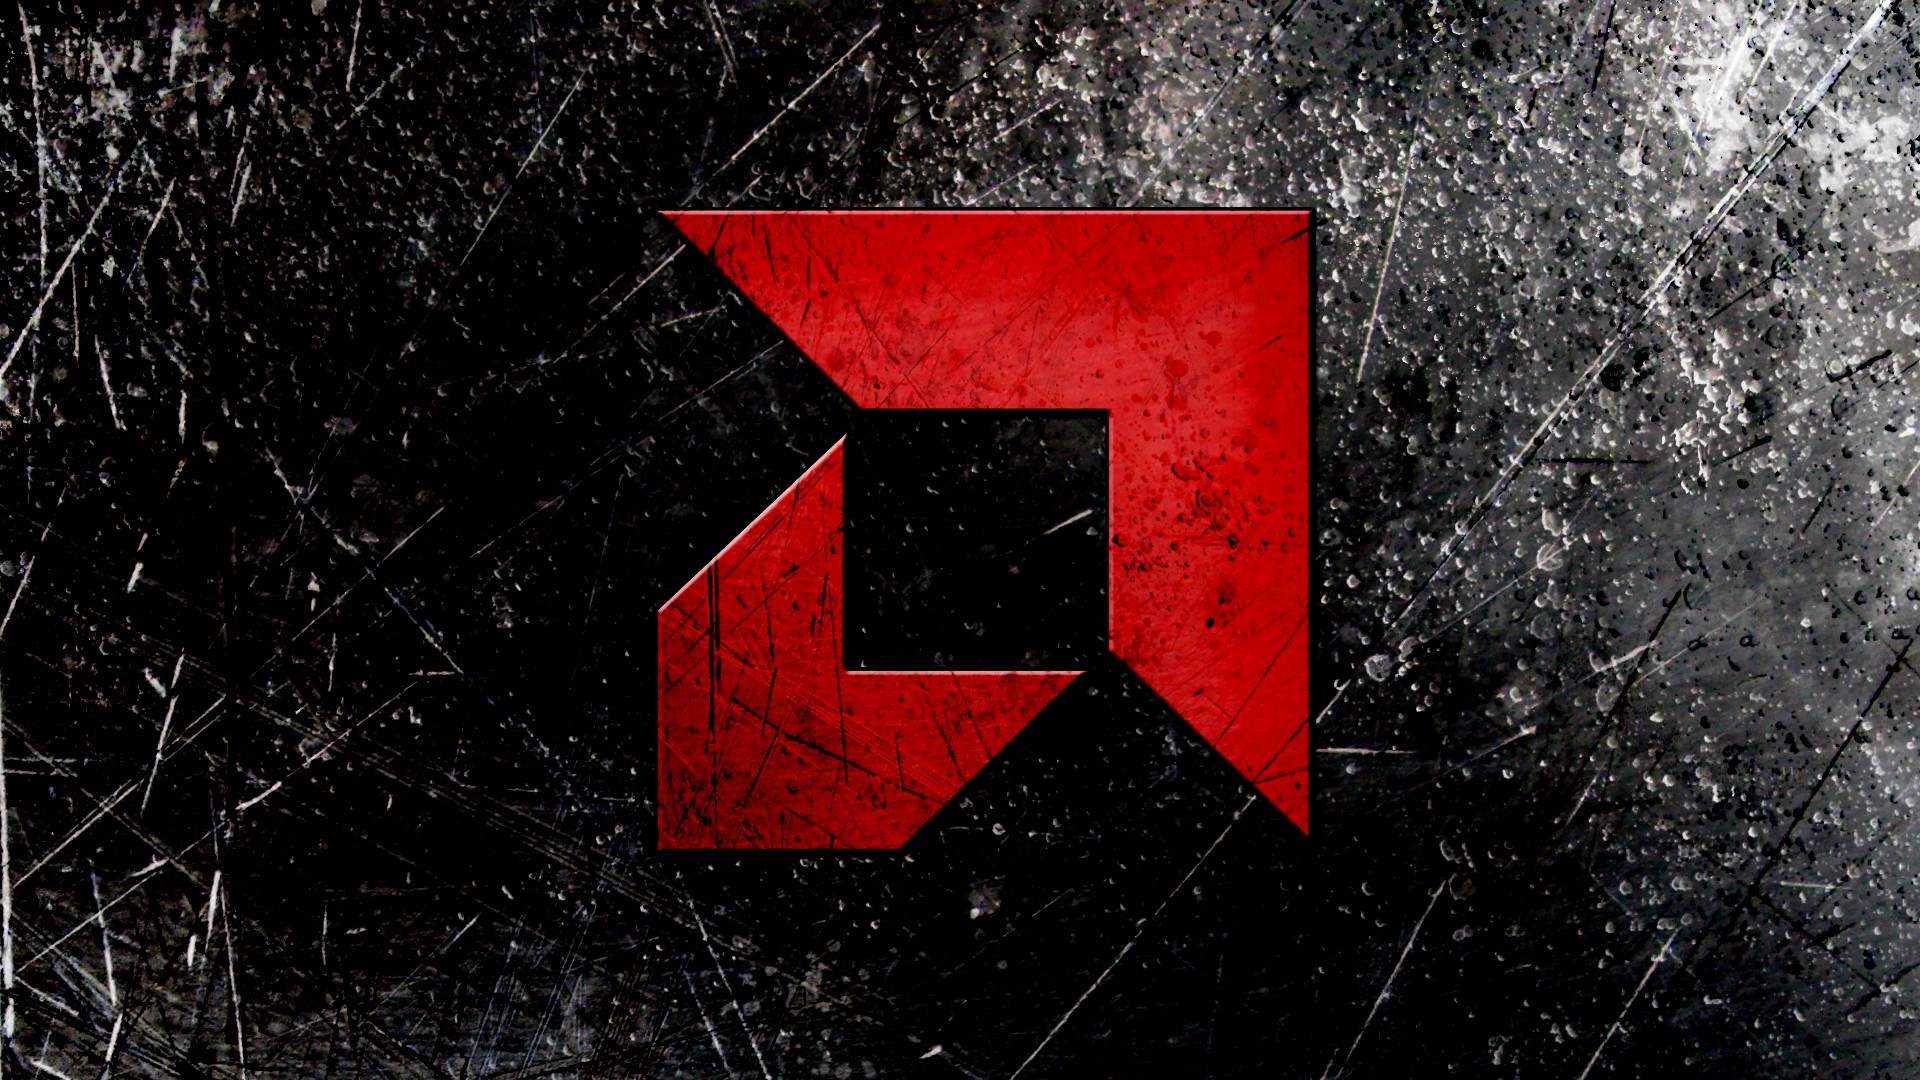 amd-logo-wallpaper